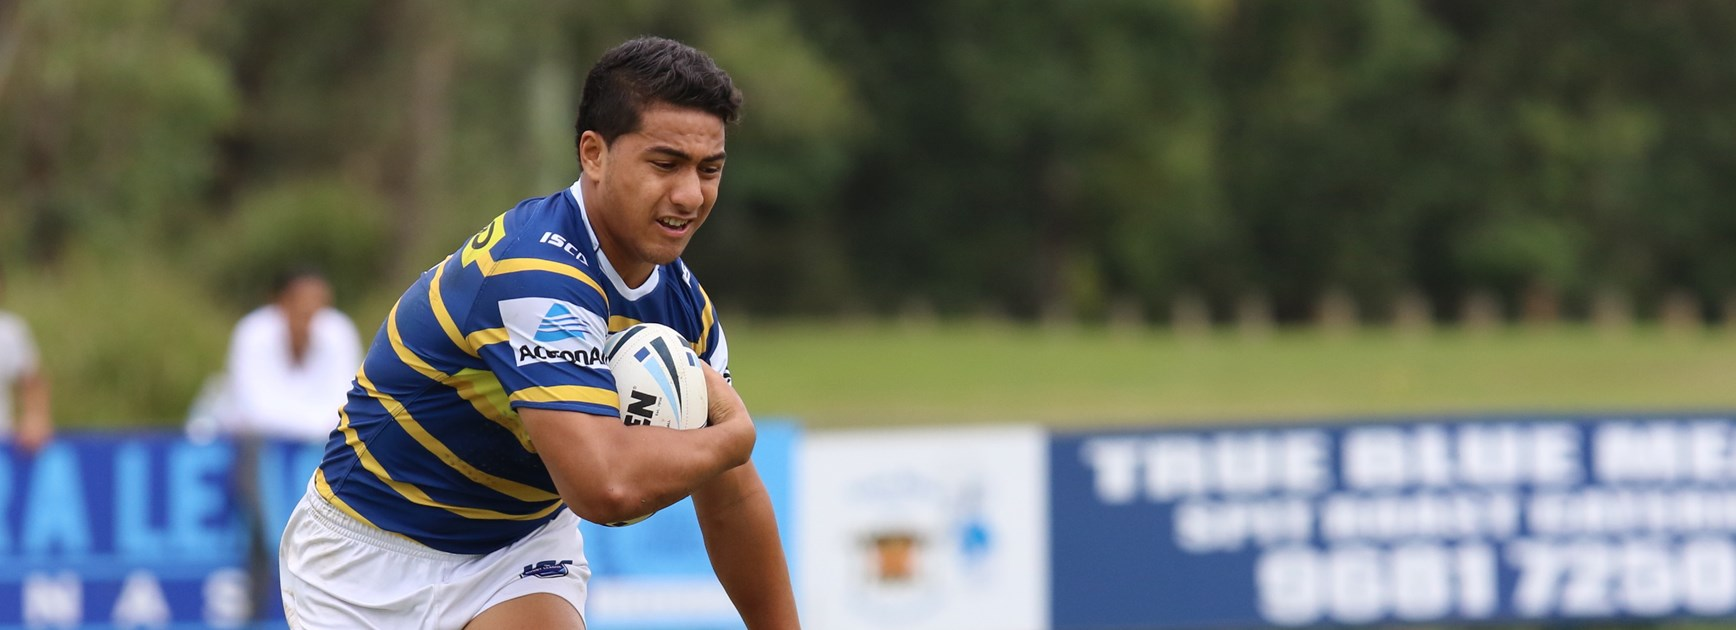 2020 Eels Junior Representative squad lists